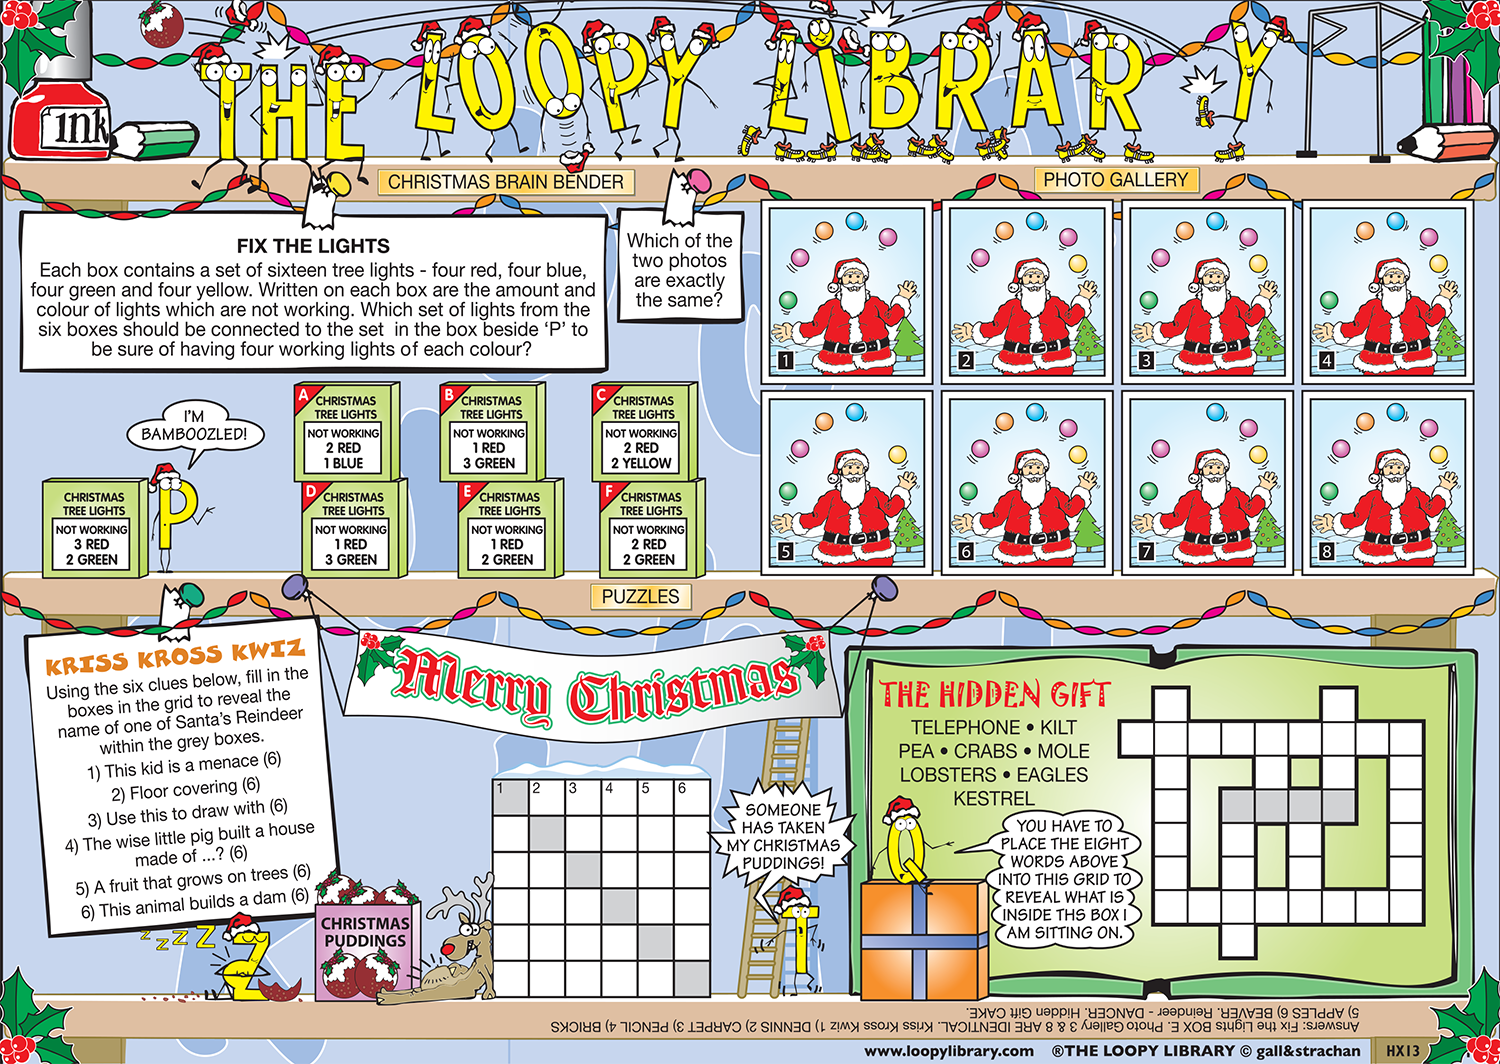 HX13-Loopy-Library-Xmas-Lights.png